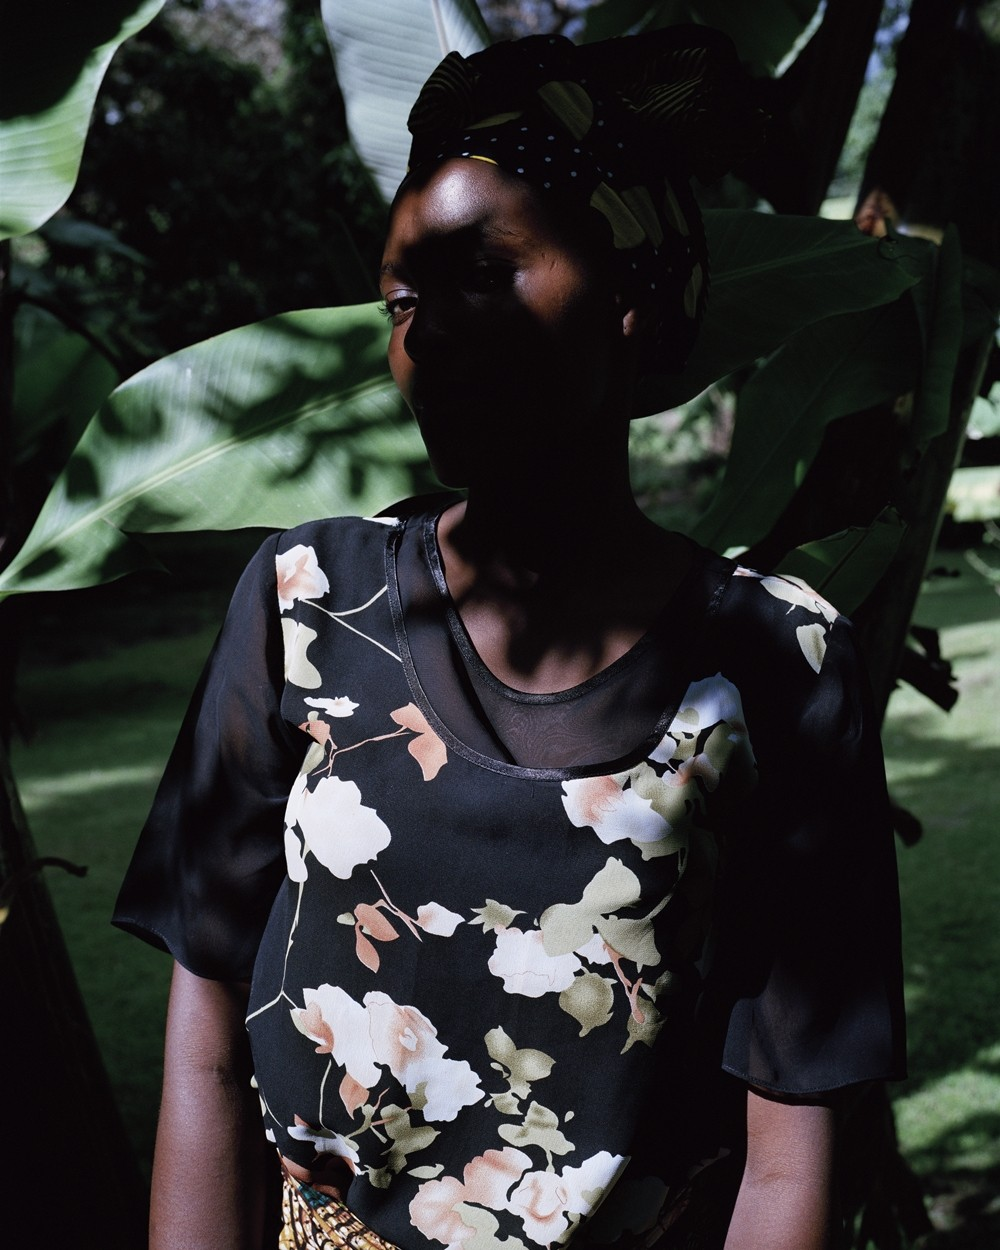 Umbra by Viviane Sassen